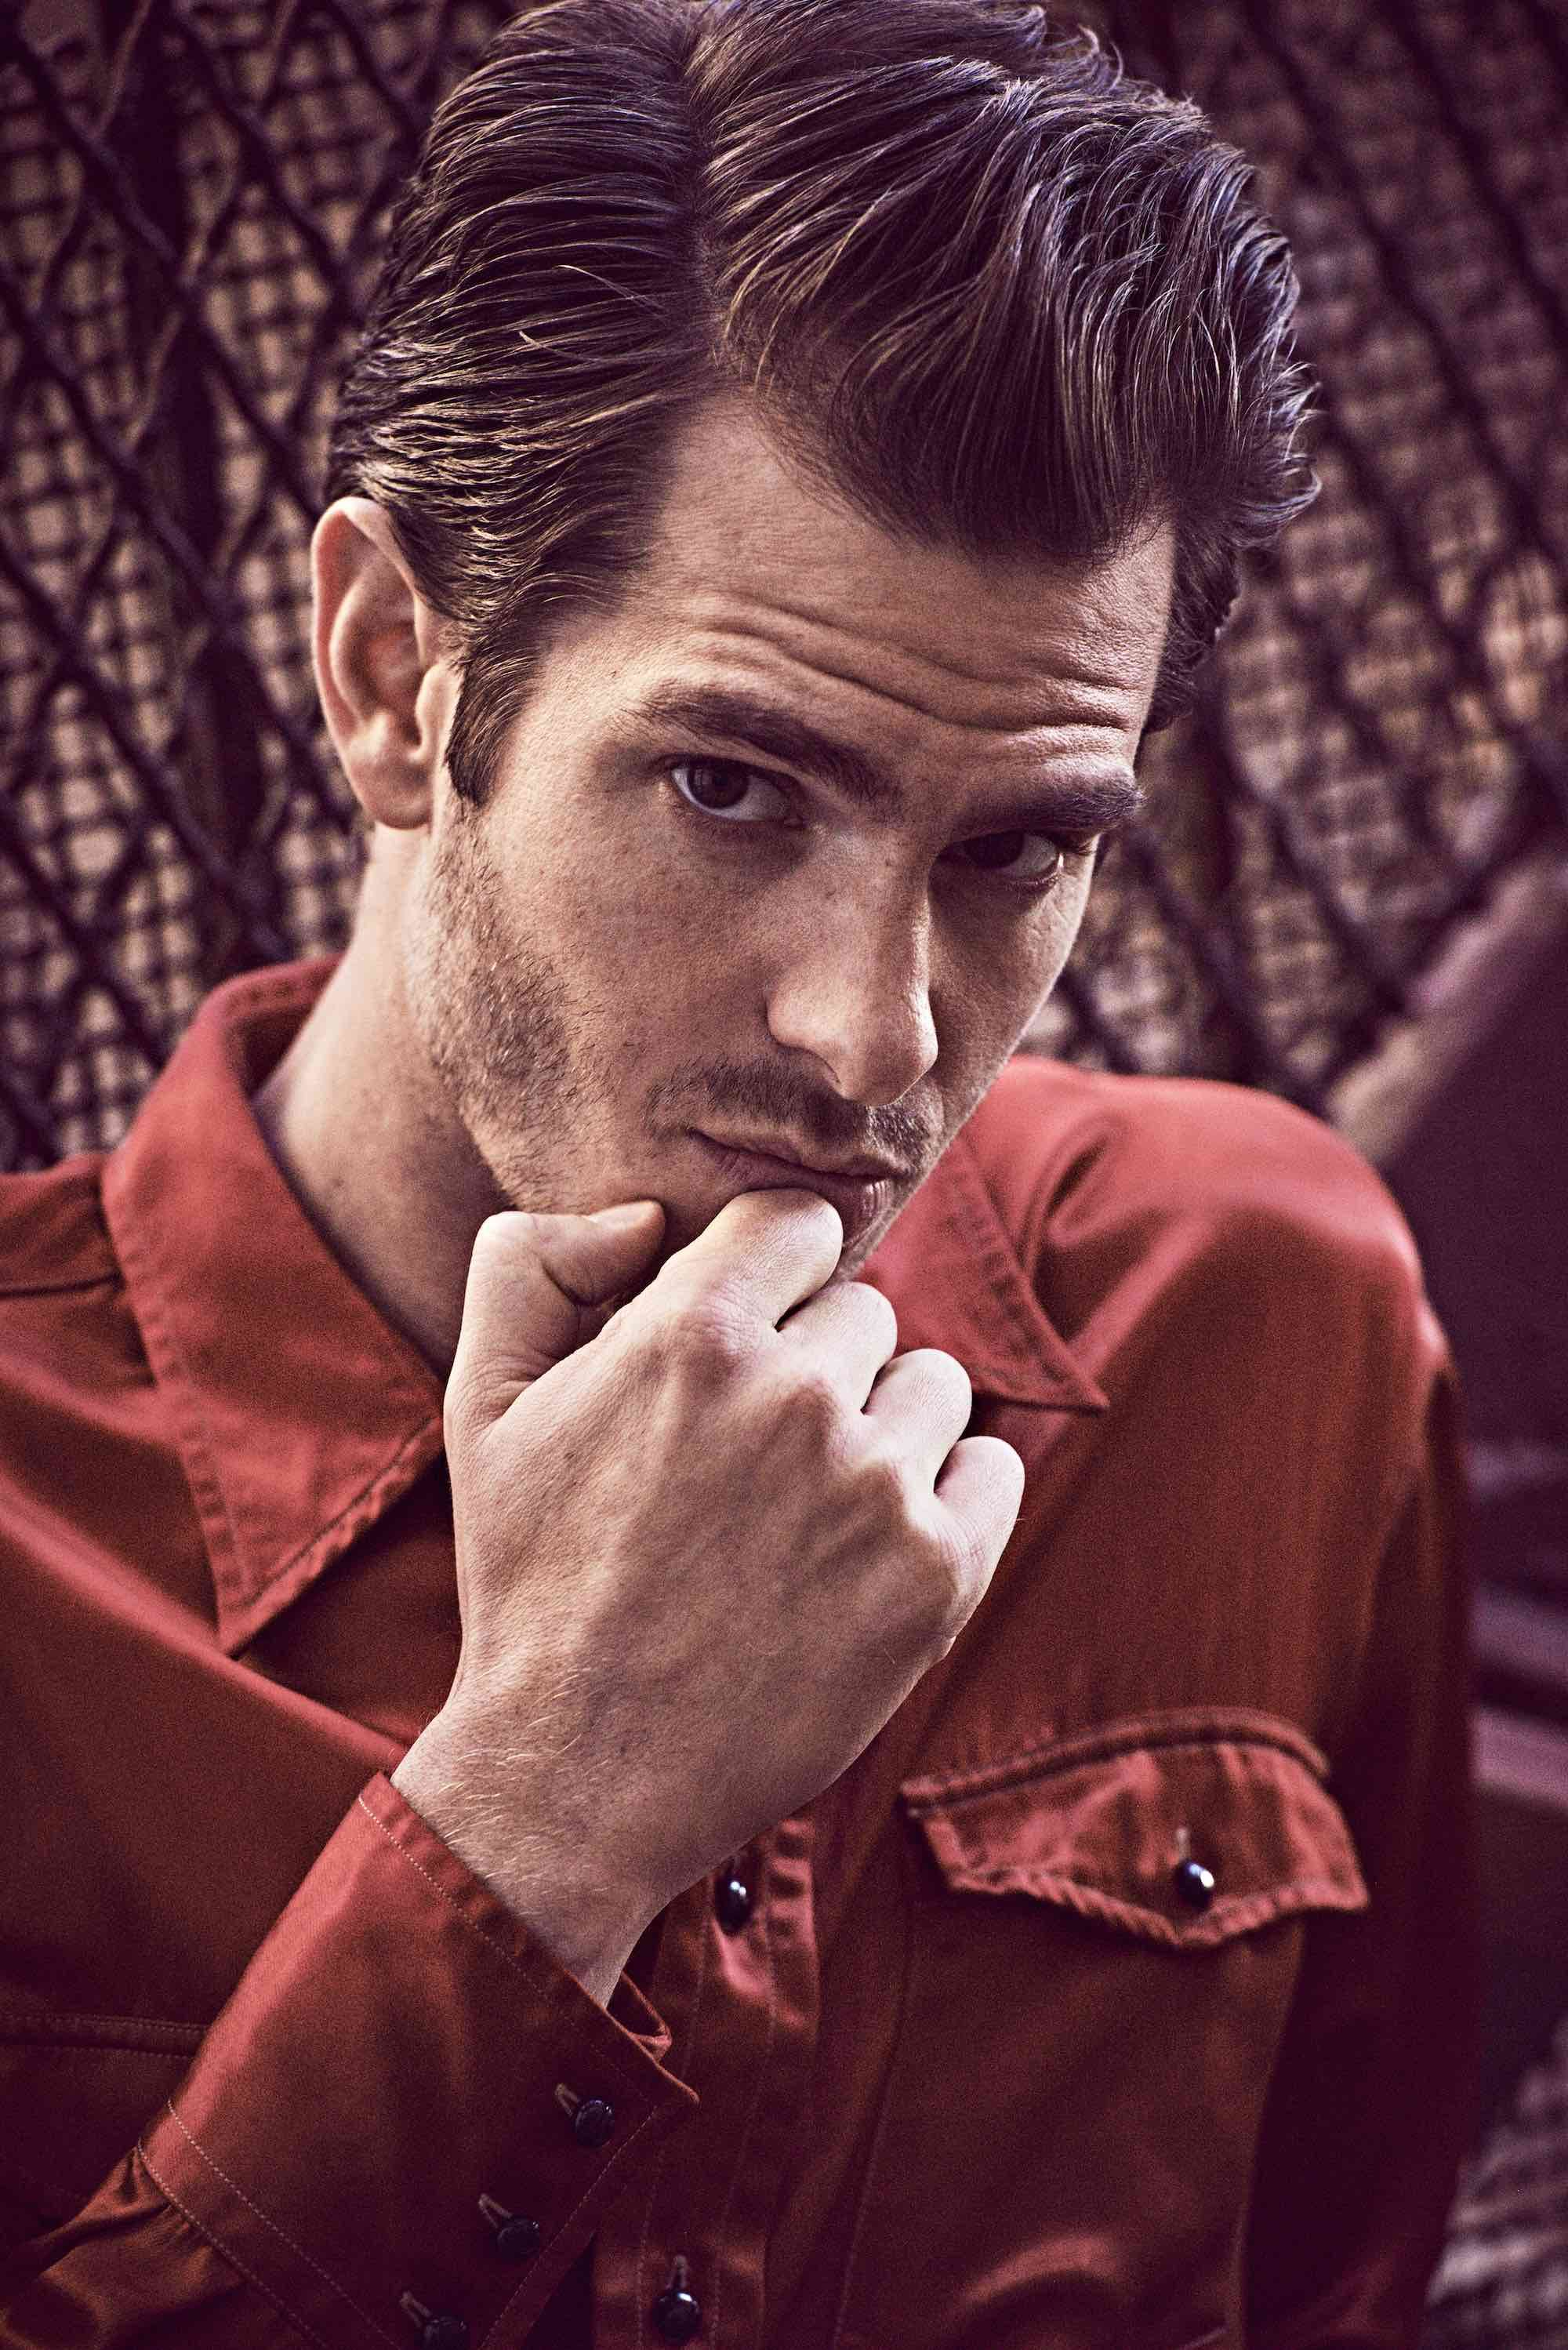 Andrew Garfield On Stage Fright Spirituality His Role In